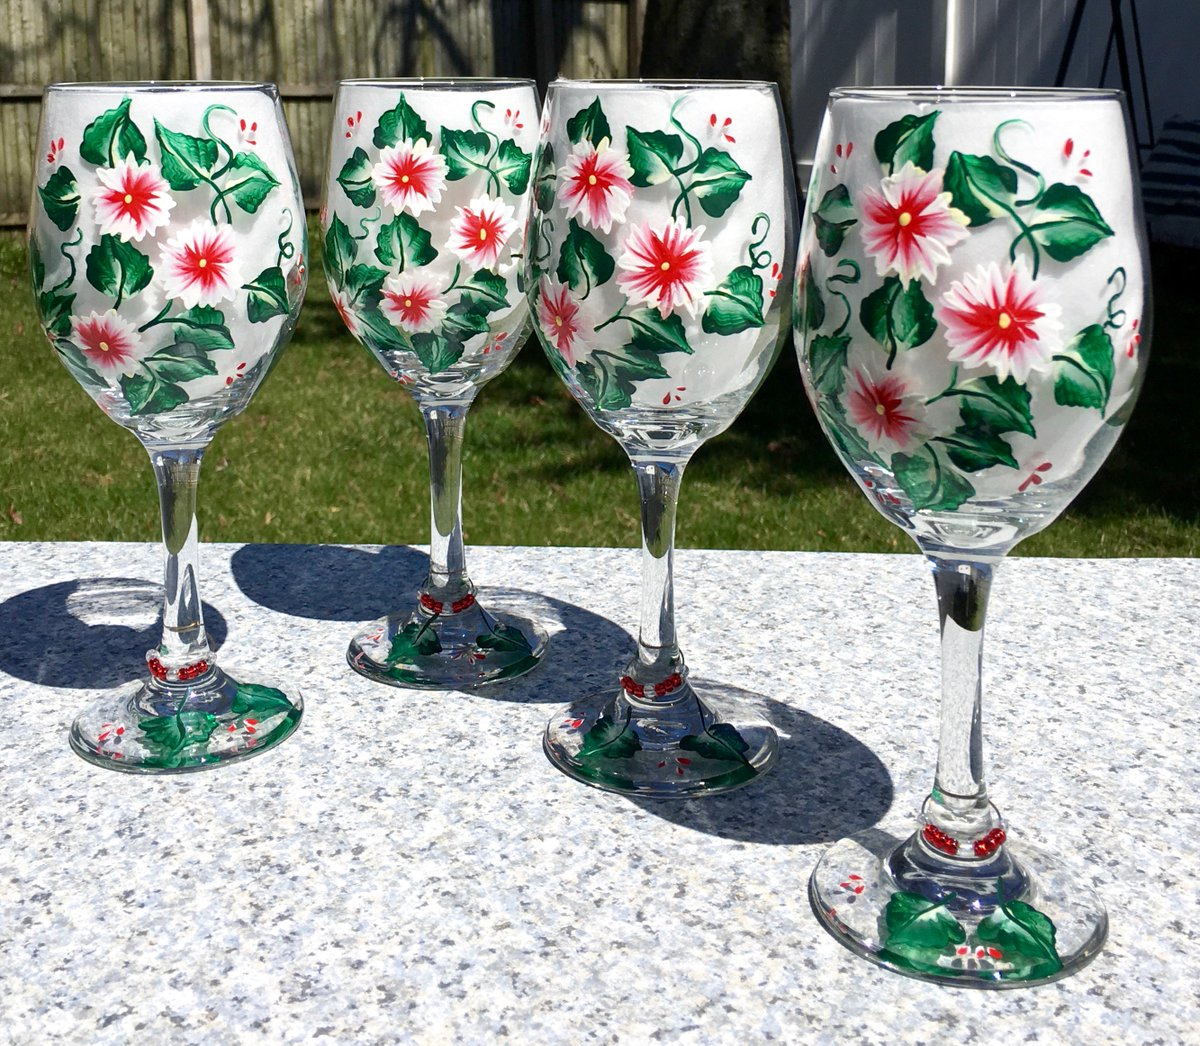 Set of four wine glasses  https://www. etsy.com/ipaintitpretty /listing/108878237/wine-glasses-hand-painted-red-flowers?ref=shop_home_active_44 &nbsp; …  #wineglasses #weddinggift #bridalshower #paintedglasses #entertaining #giftsforher<br>http://pic.twitter.com/rQcQd3ocqW